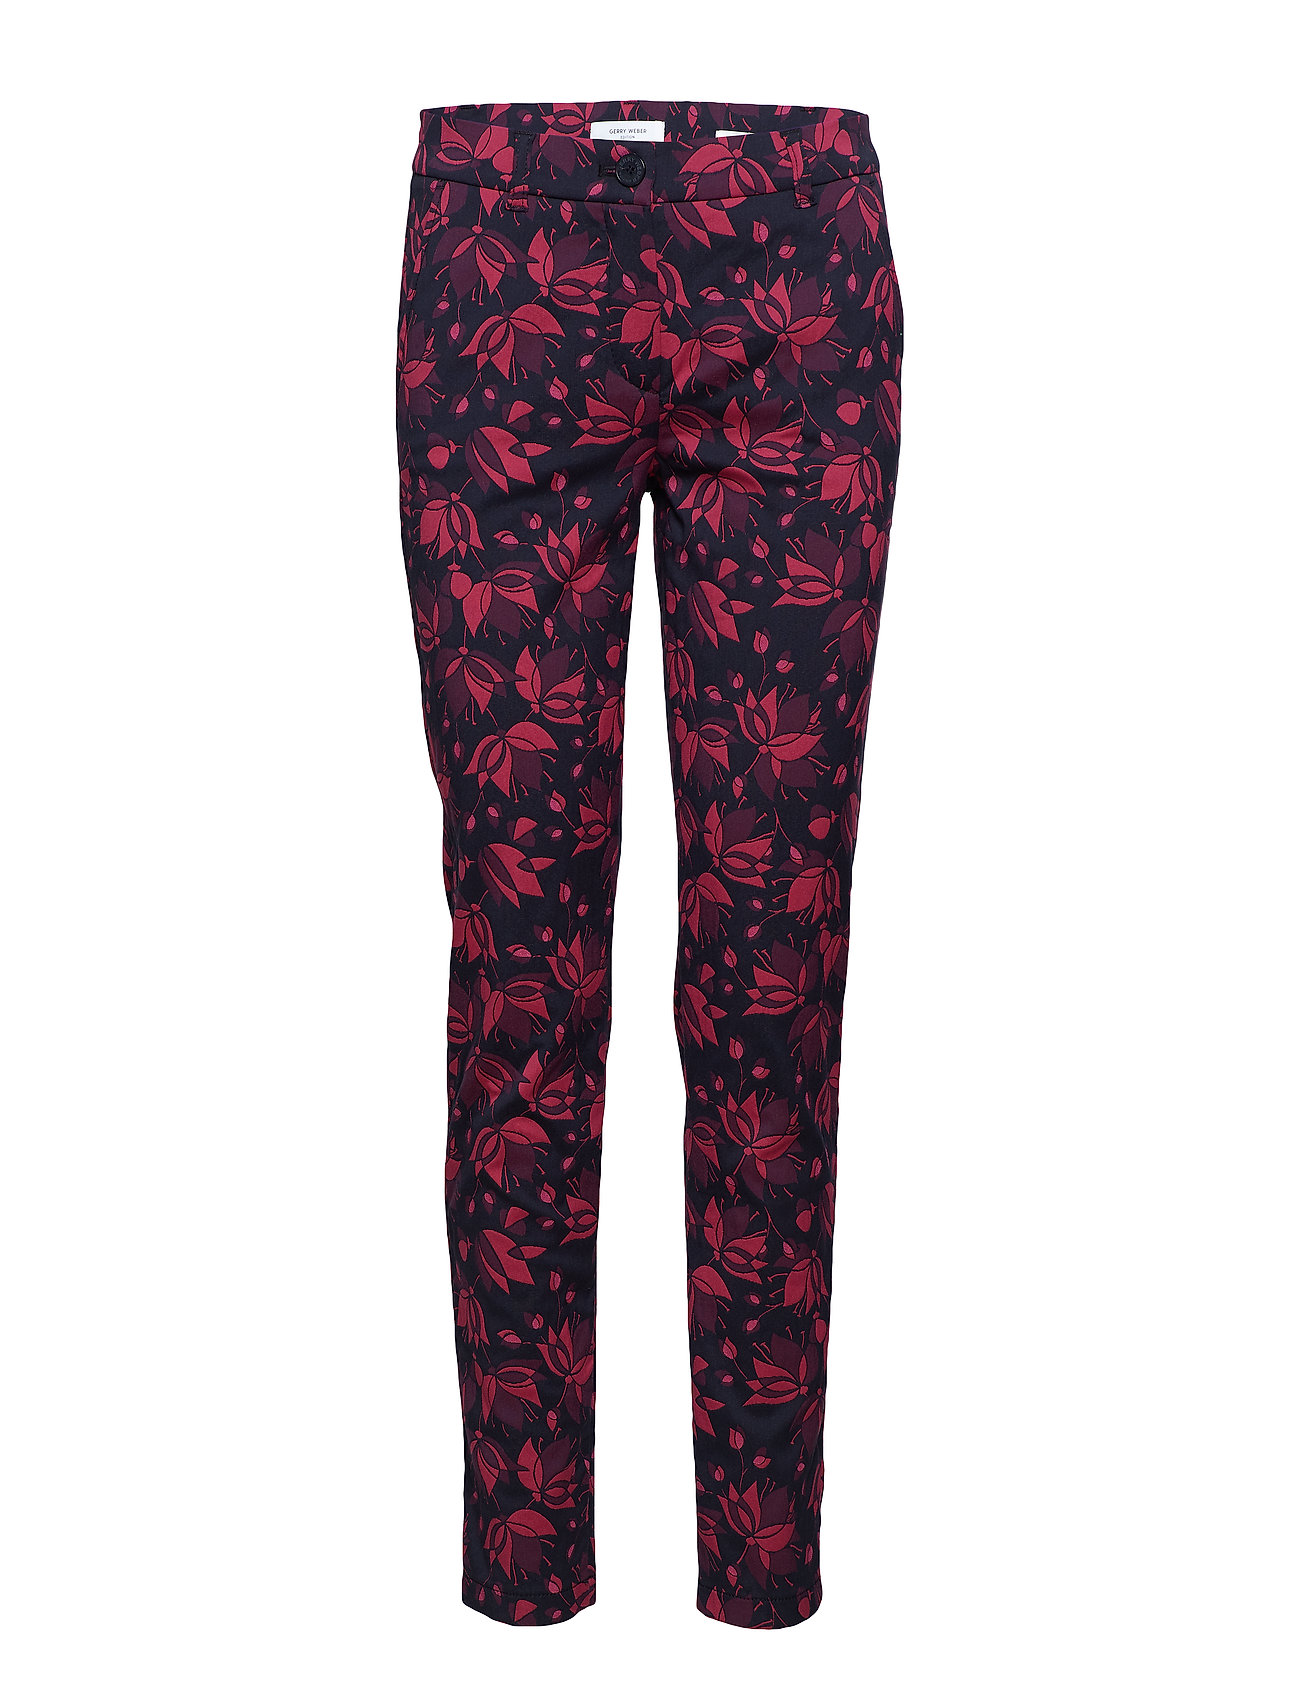 Gerry Weber Edition LEISURE TROUSERS LON - NAVY/BERRY